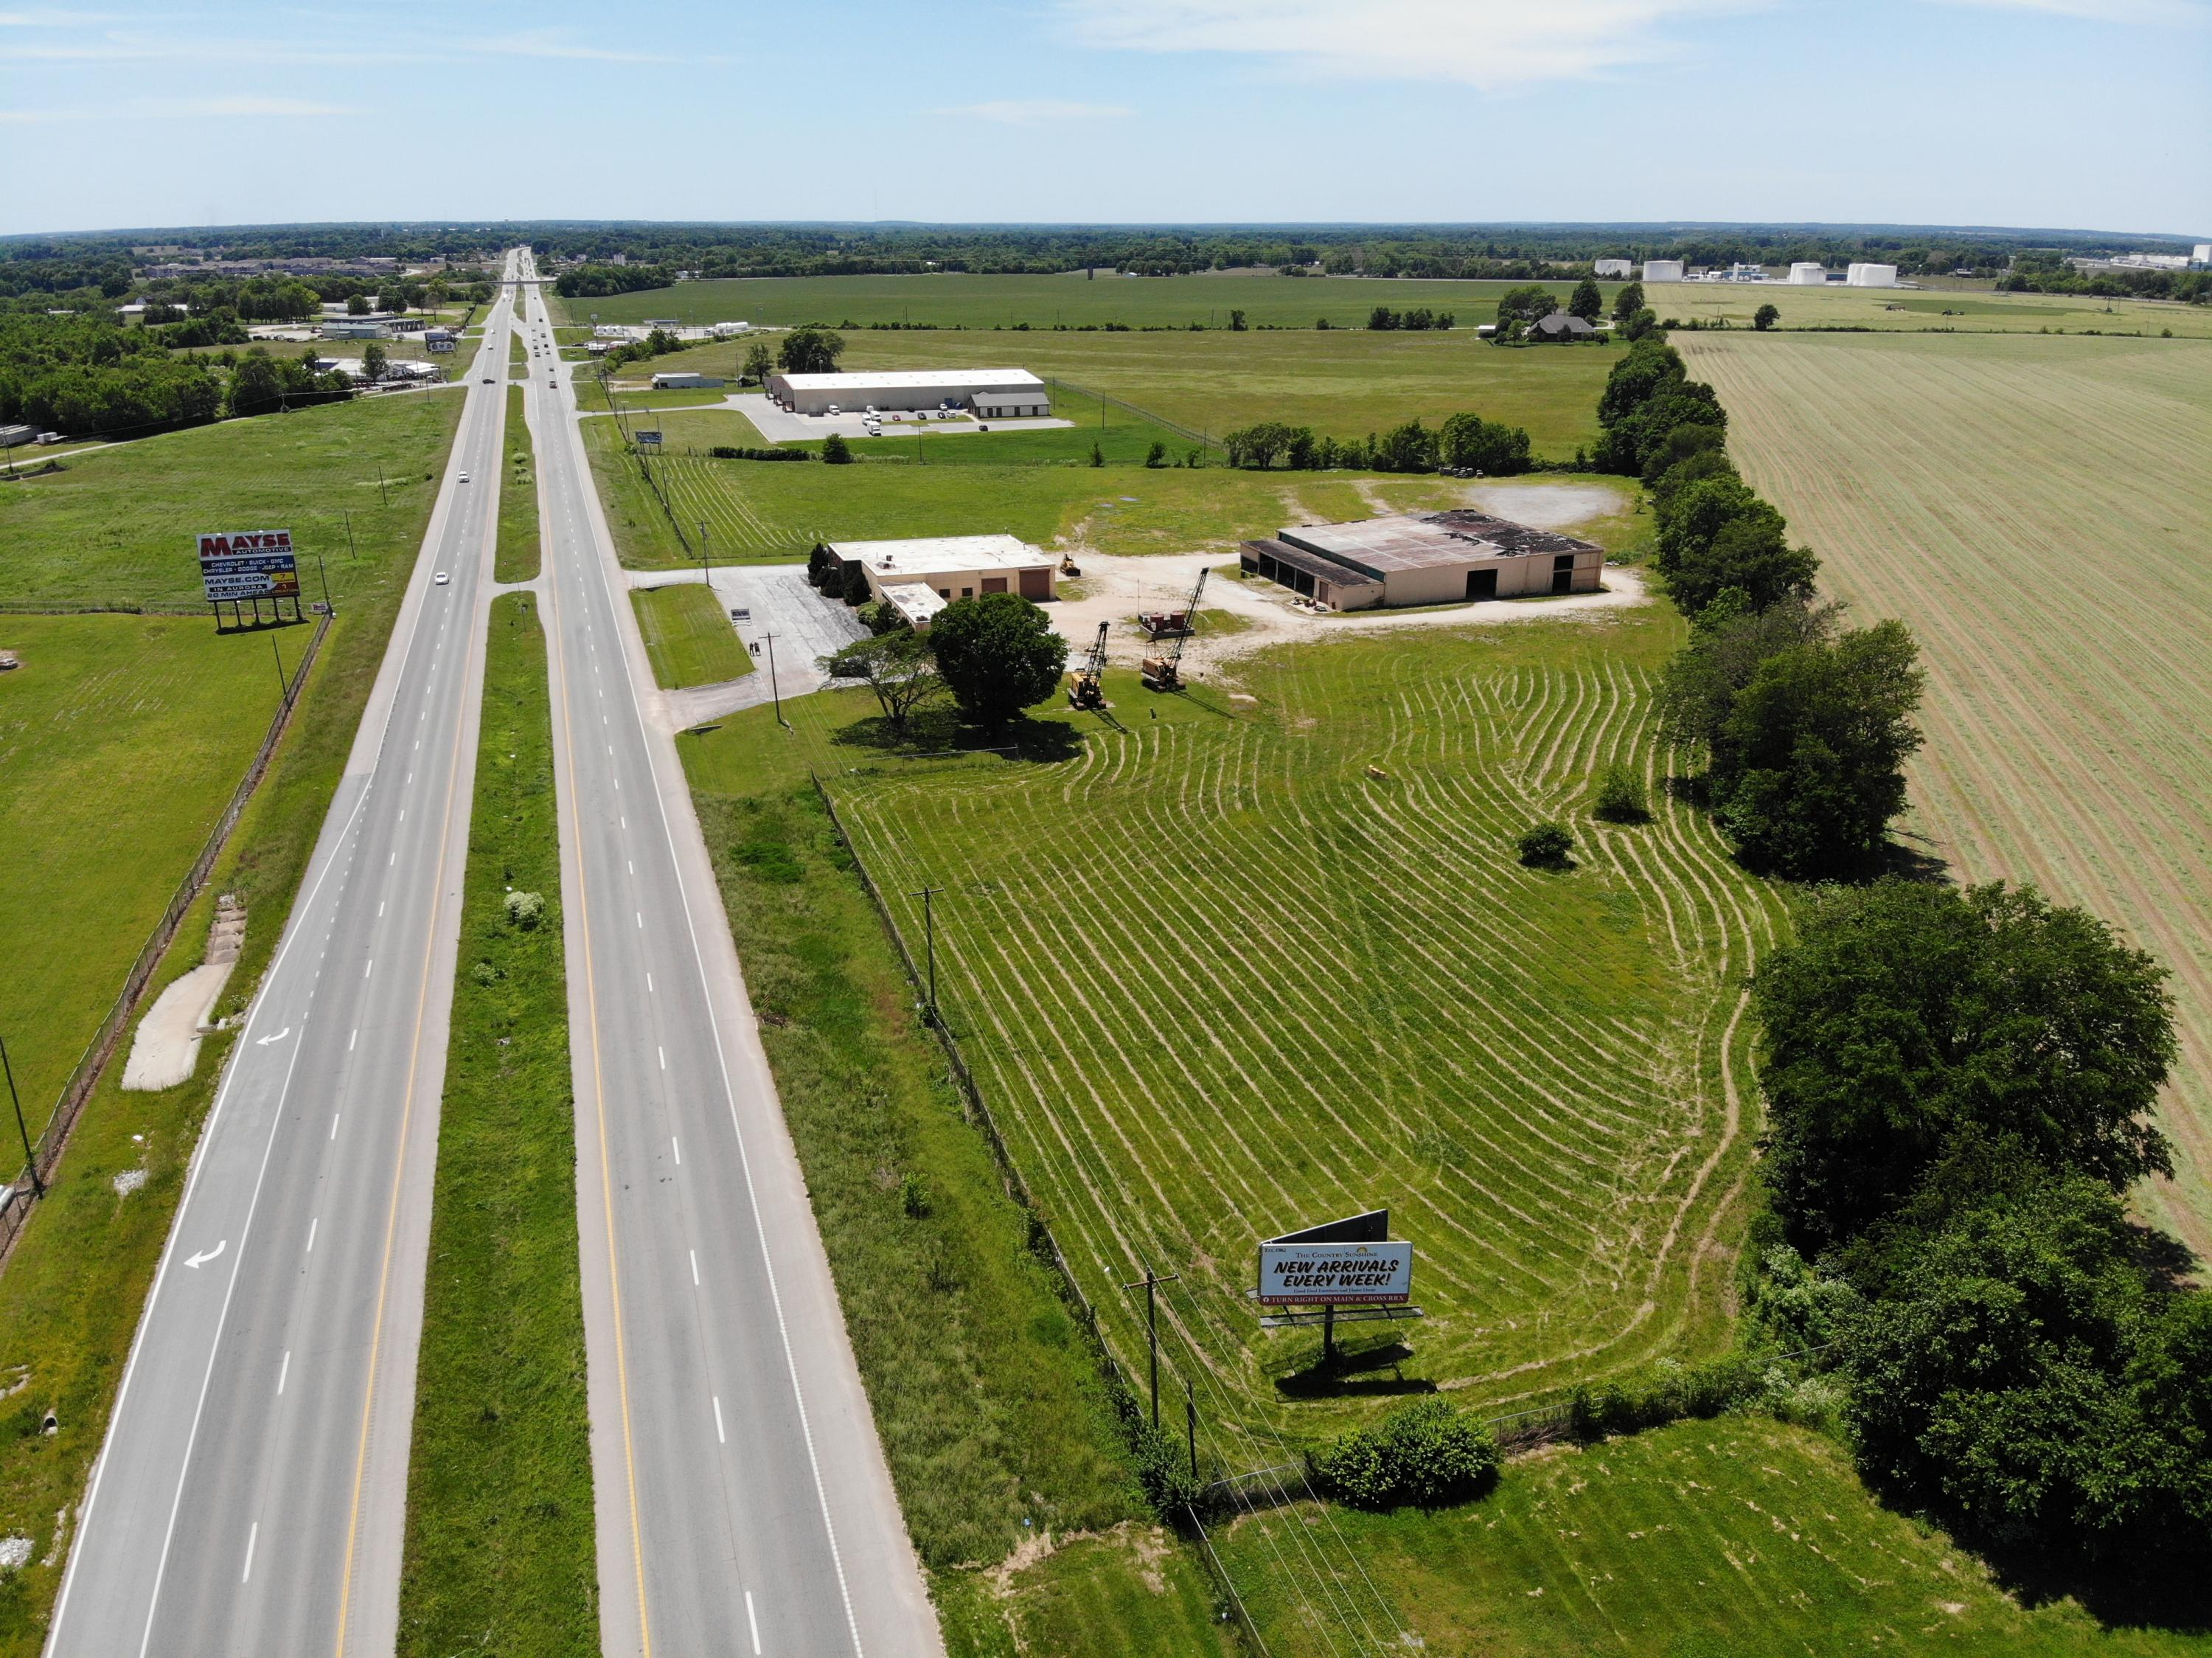 6021 West Us Hwy 60 UNIT Tract 1 Republic, MO 65738